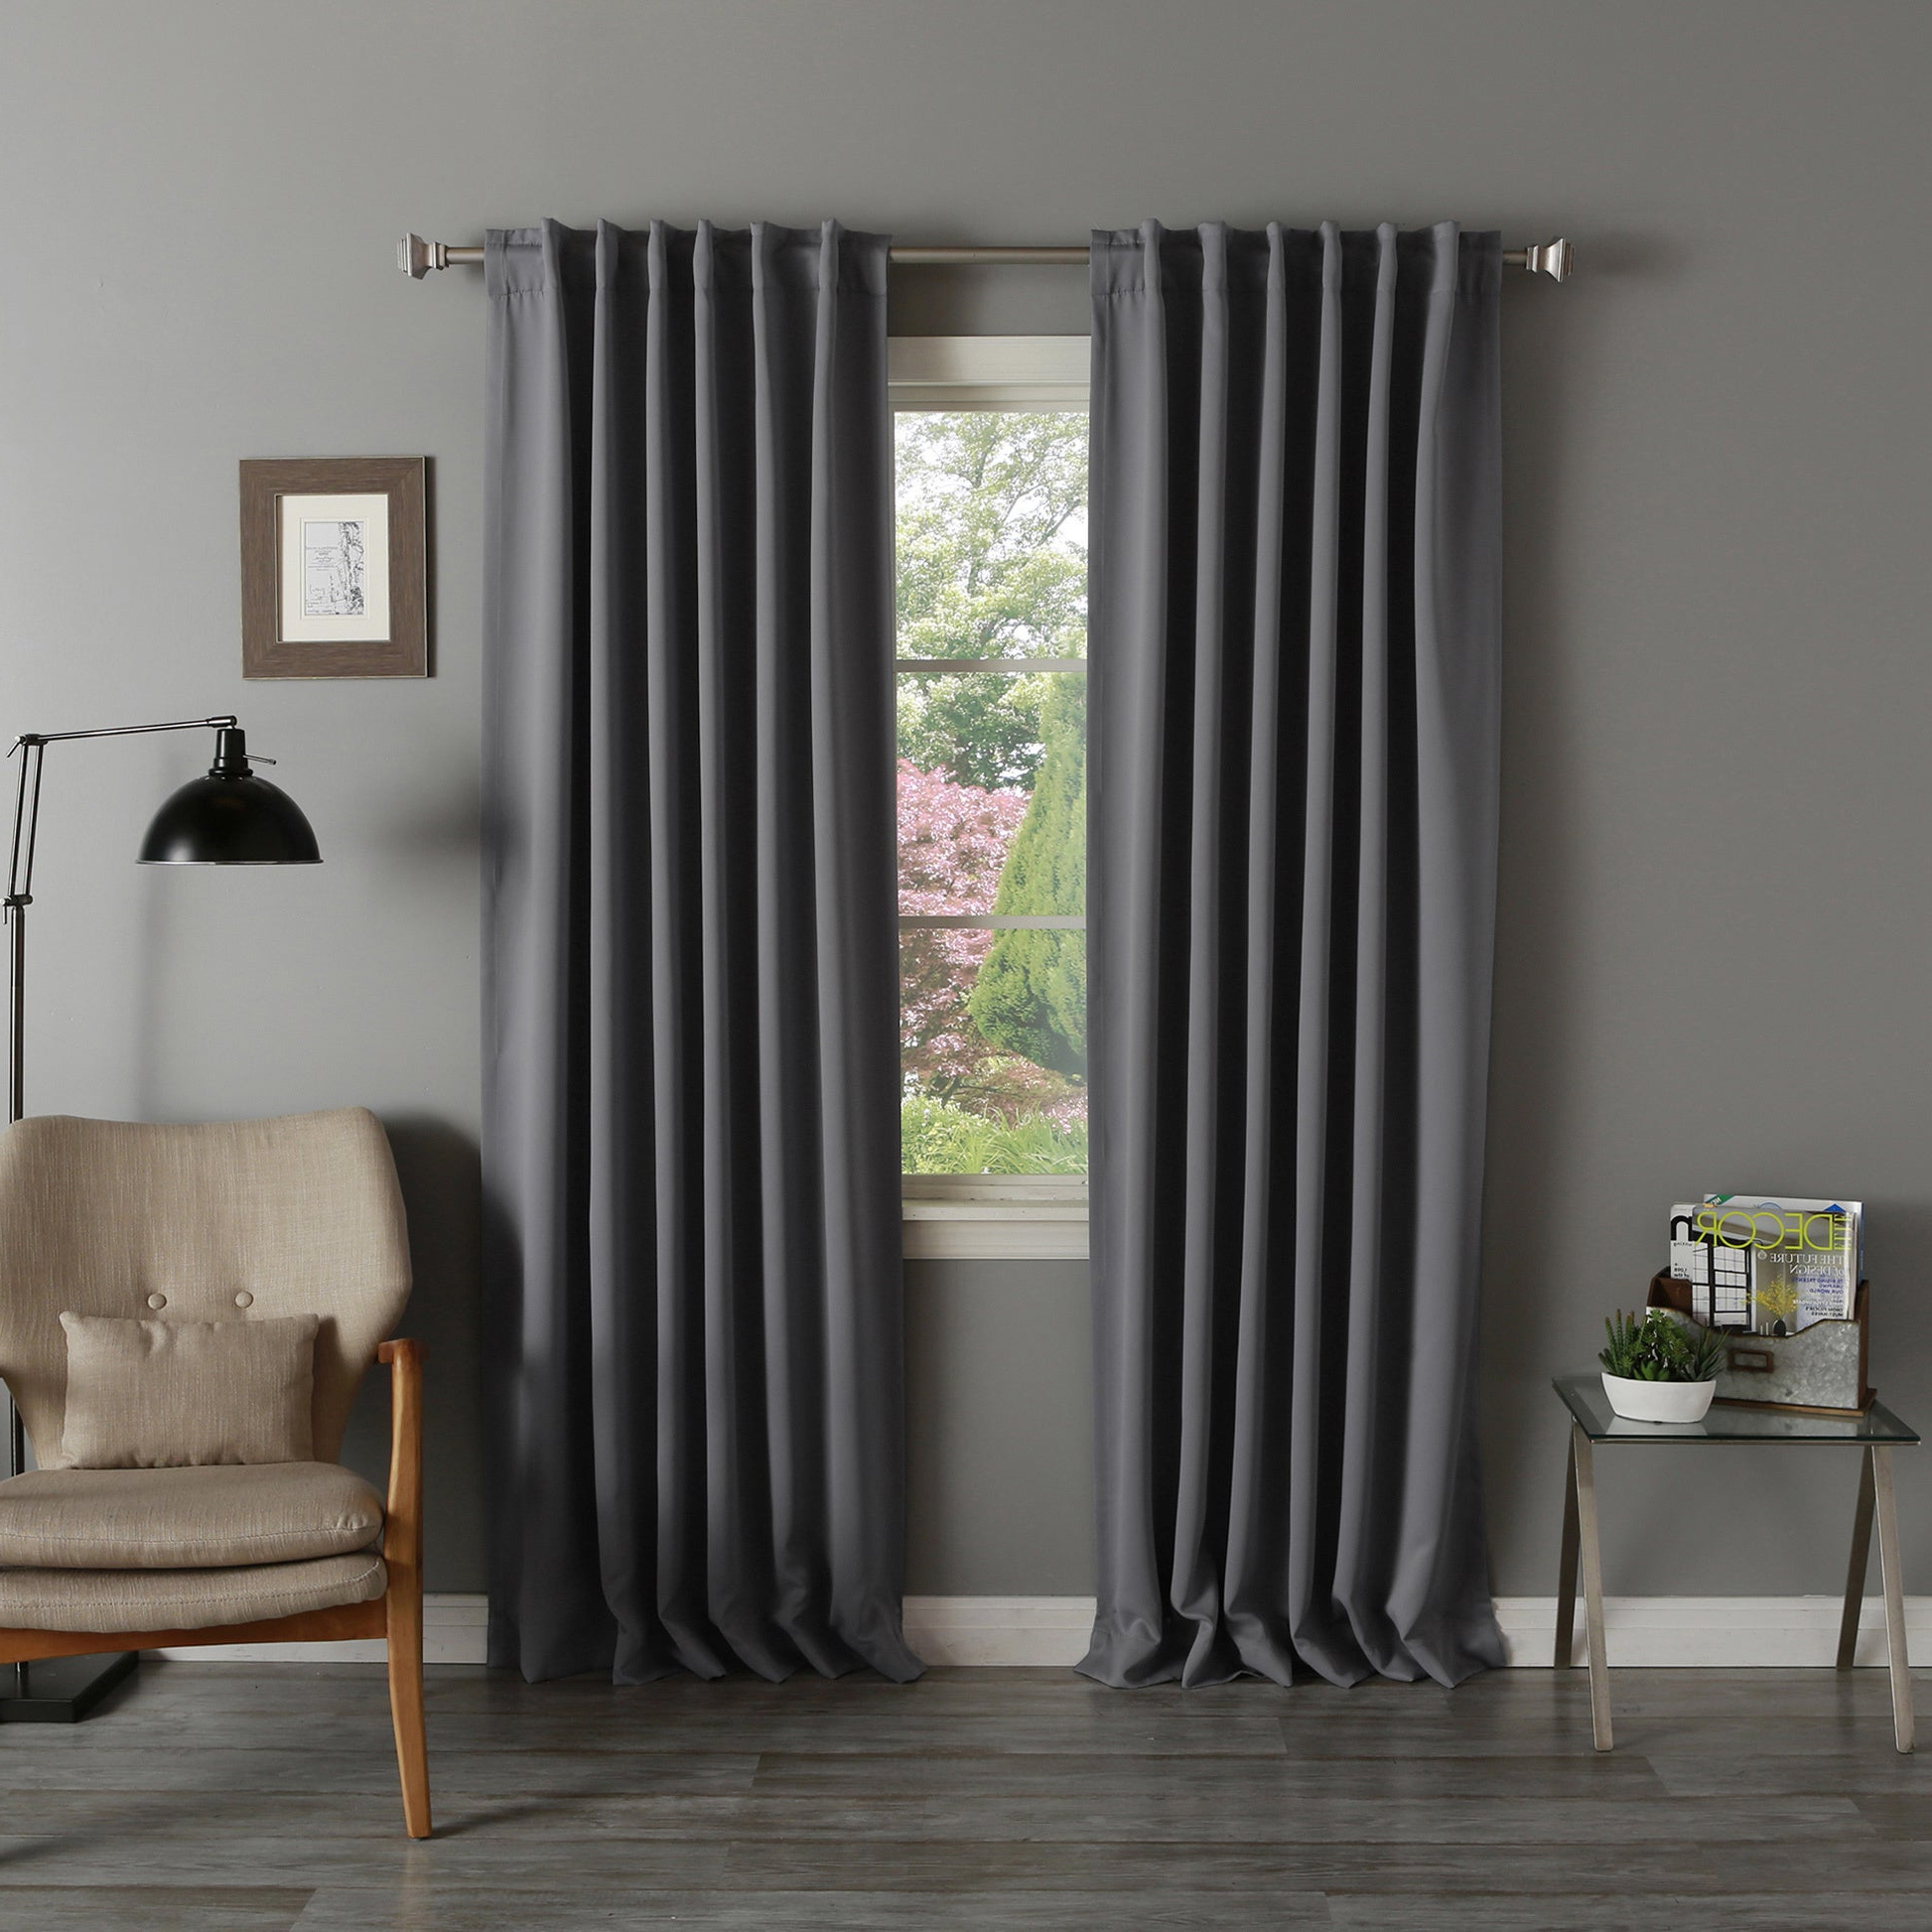 Well Liked Aurora Home Thermal Rod Pocket 96 Inch Blackout Curtain Panel Pair – 52 X 96 In Thermal Rod Pocket Blackout Curtain Panel Pairs (View 19 of 20)